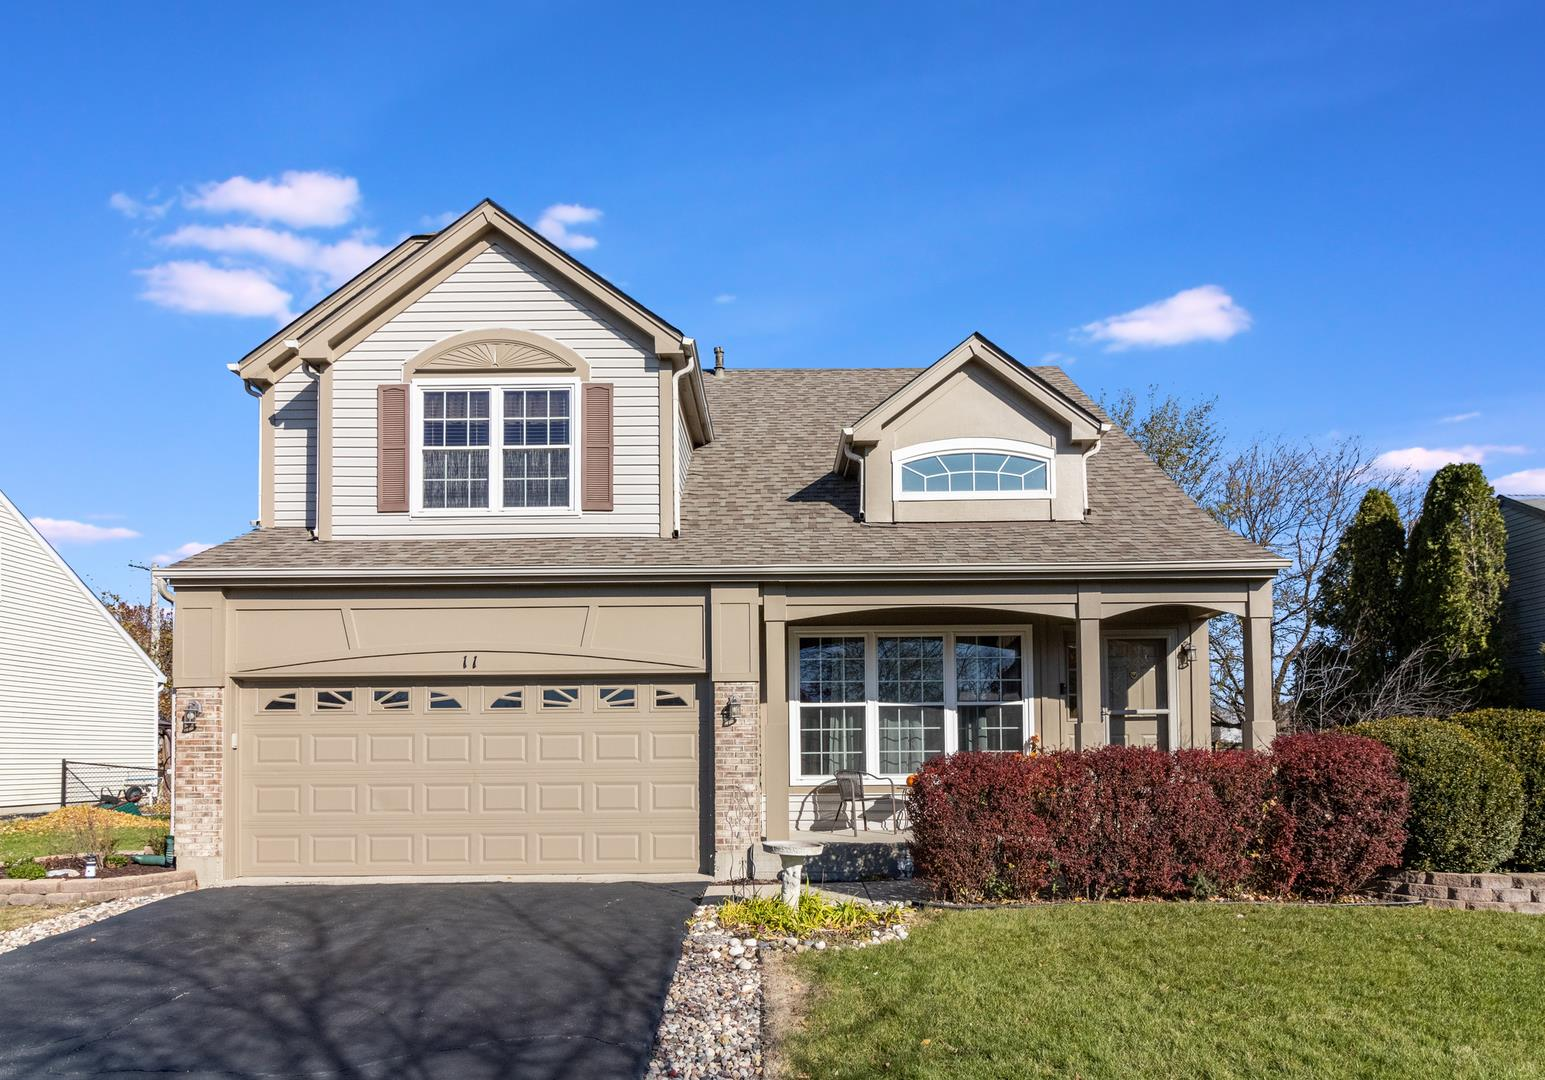 11 Ridge Court, South Elgin, IL 60177 - #: 10941840